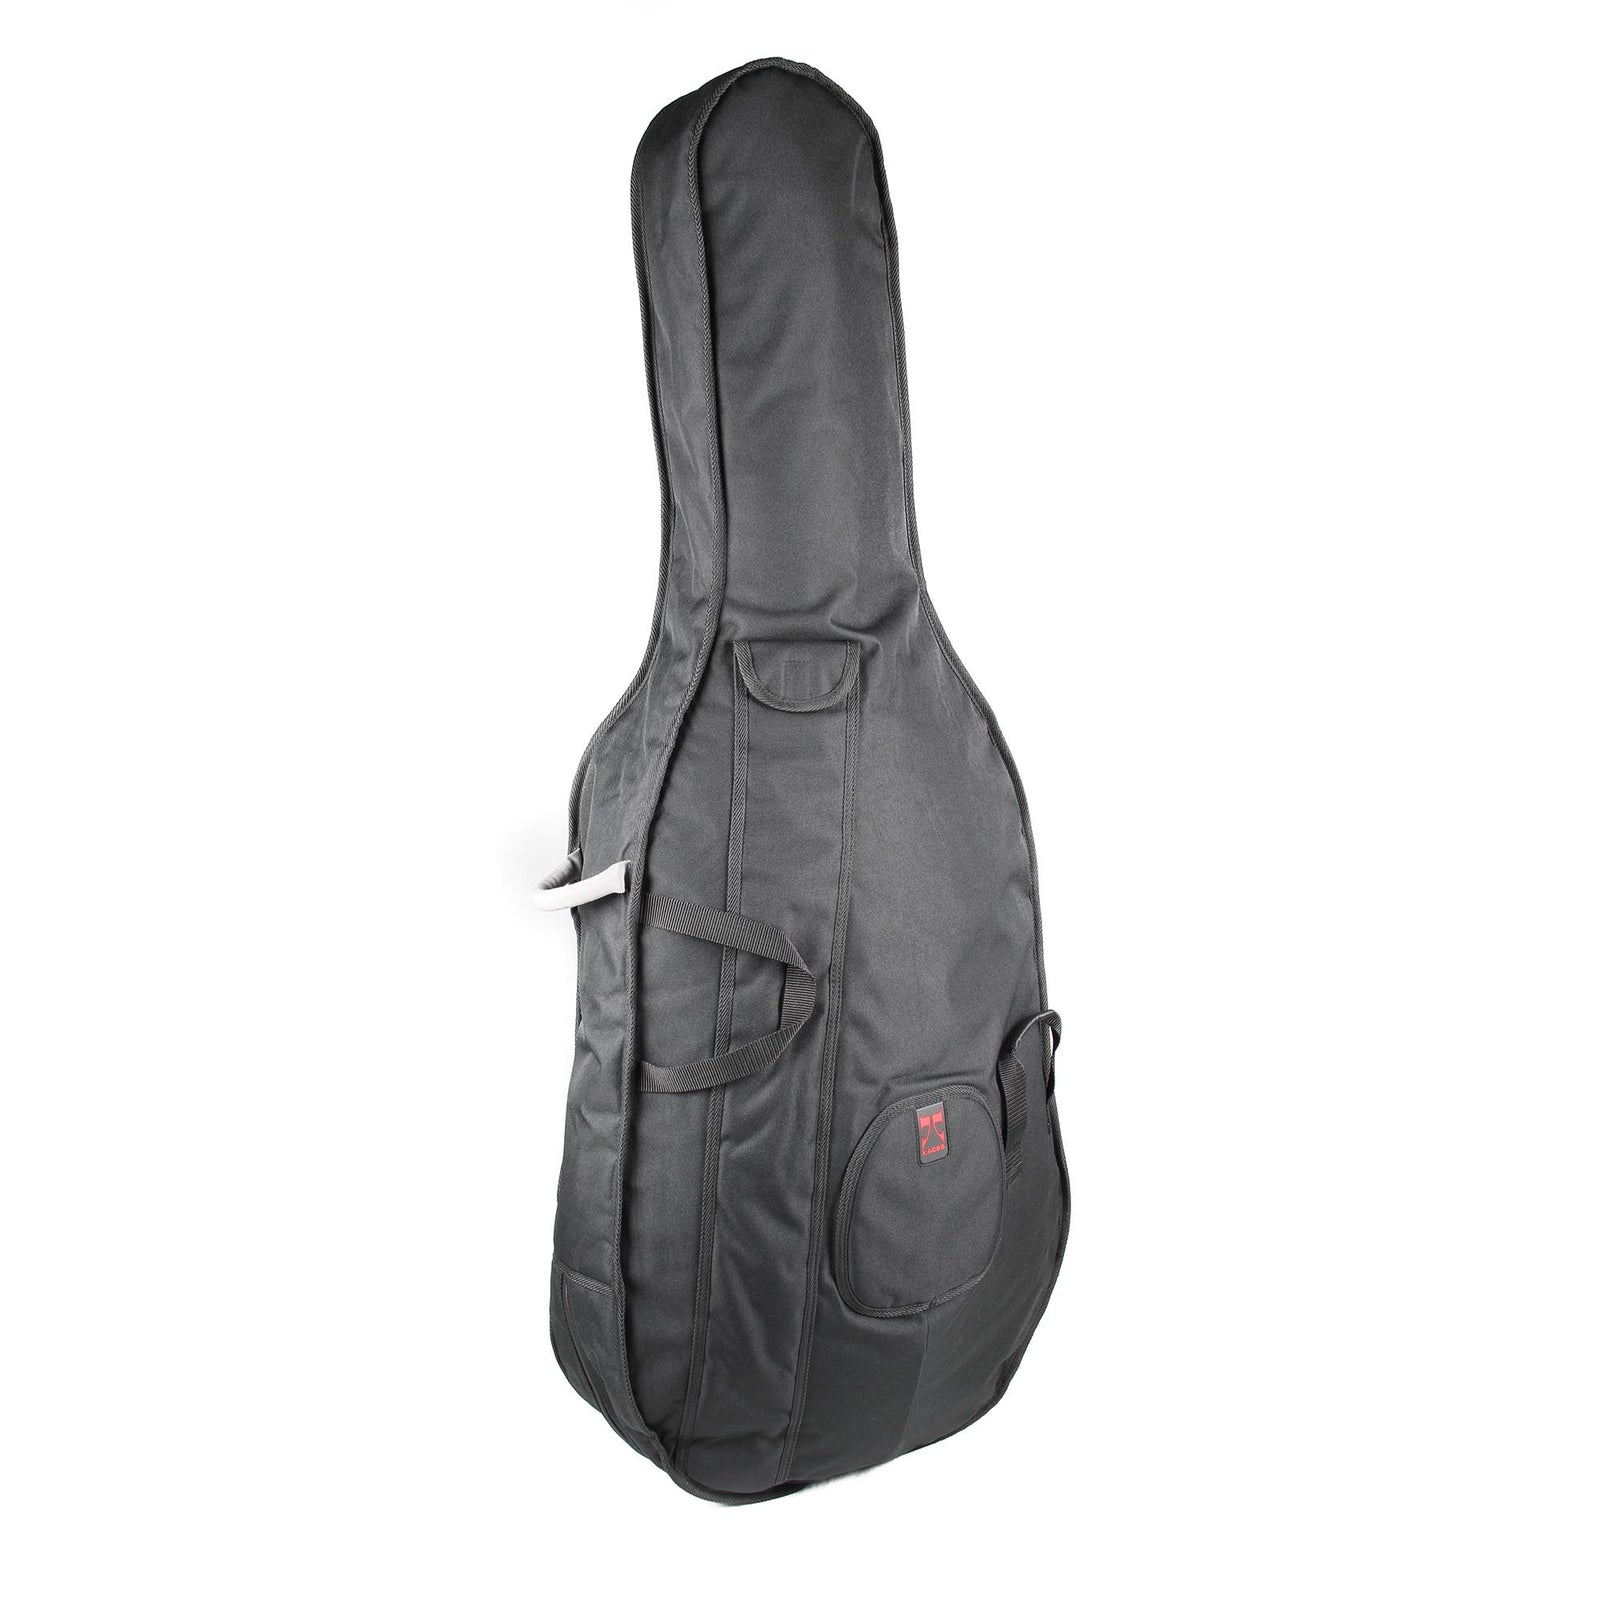 Kaces University Series 1/2 Size Cello Bag